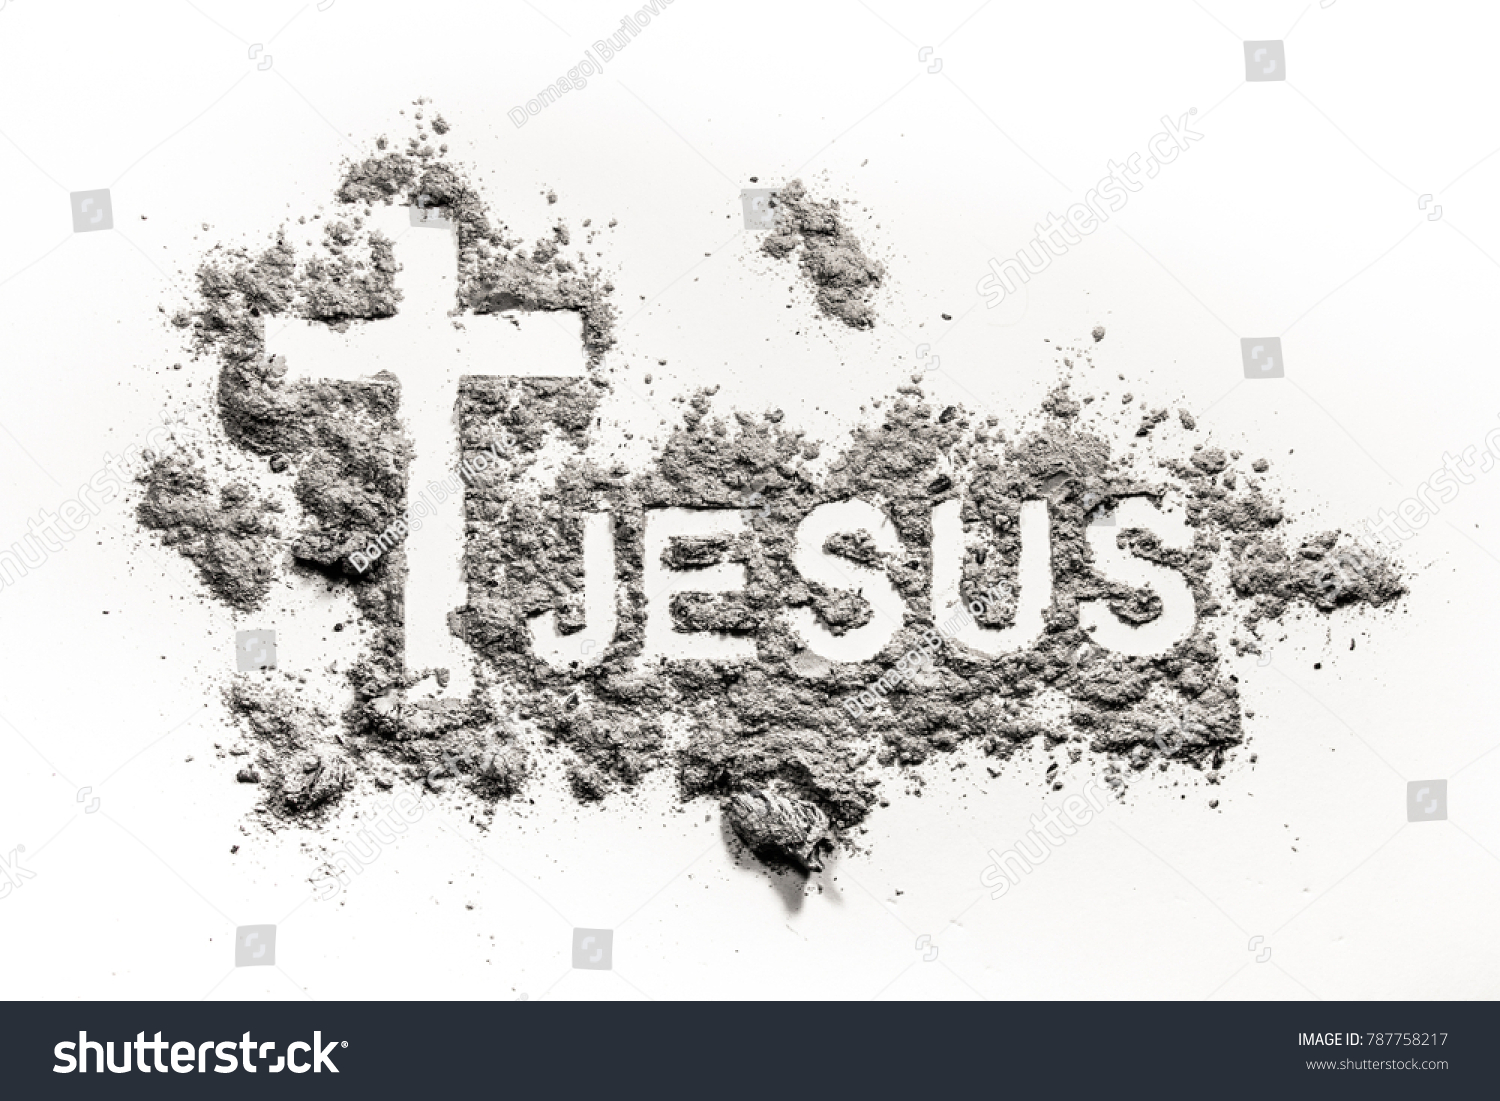 Word jesus christian cross crucifix made stock photo 787758217 word jesus and christian cross or crucifix made in ash as lent ash wednesday buycottarizona Choice Image